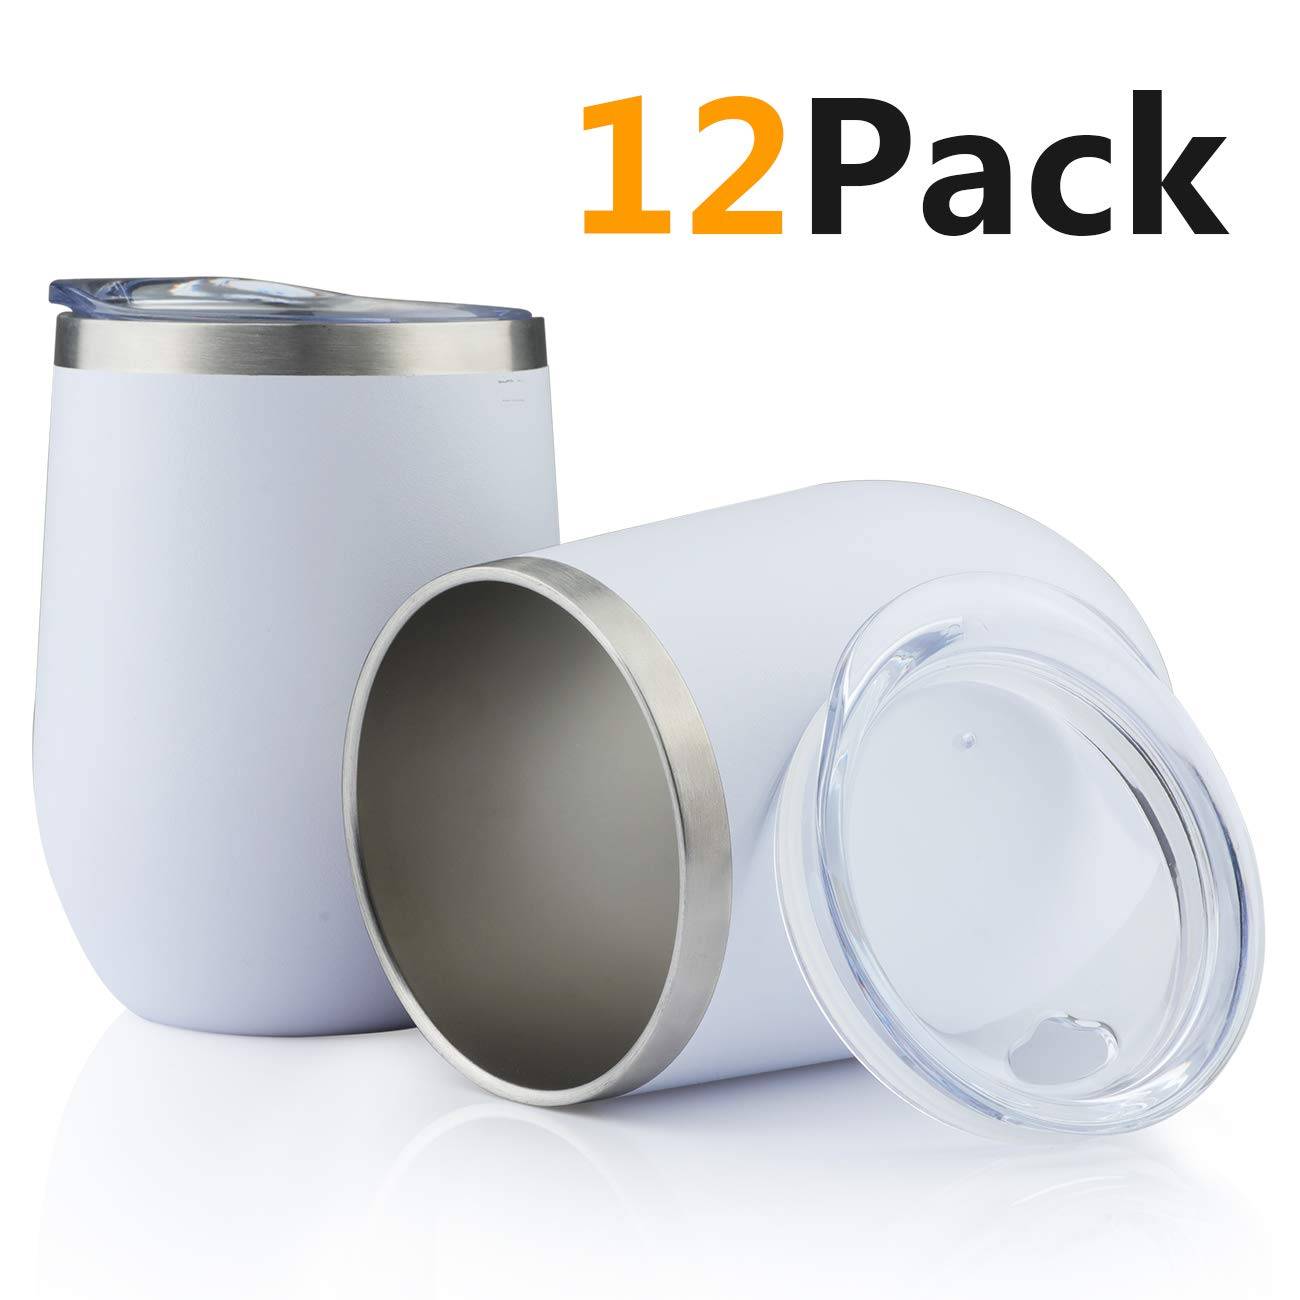 Jearey Stainless Steel Wine Glass Tumbler 12 oz Stemless Double Wall Vacuum Insulated Matte Wine Tumblers with Lid (White, 12 Pack)